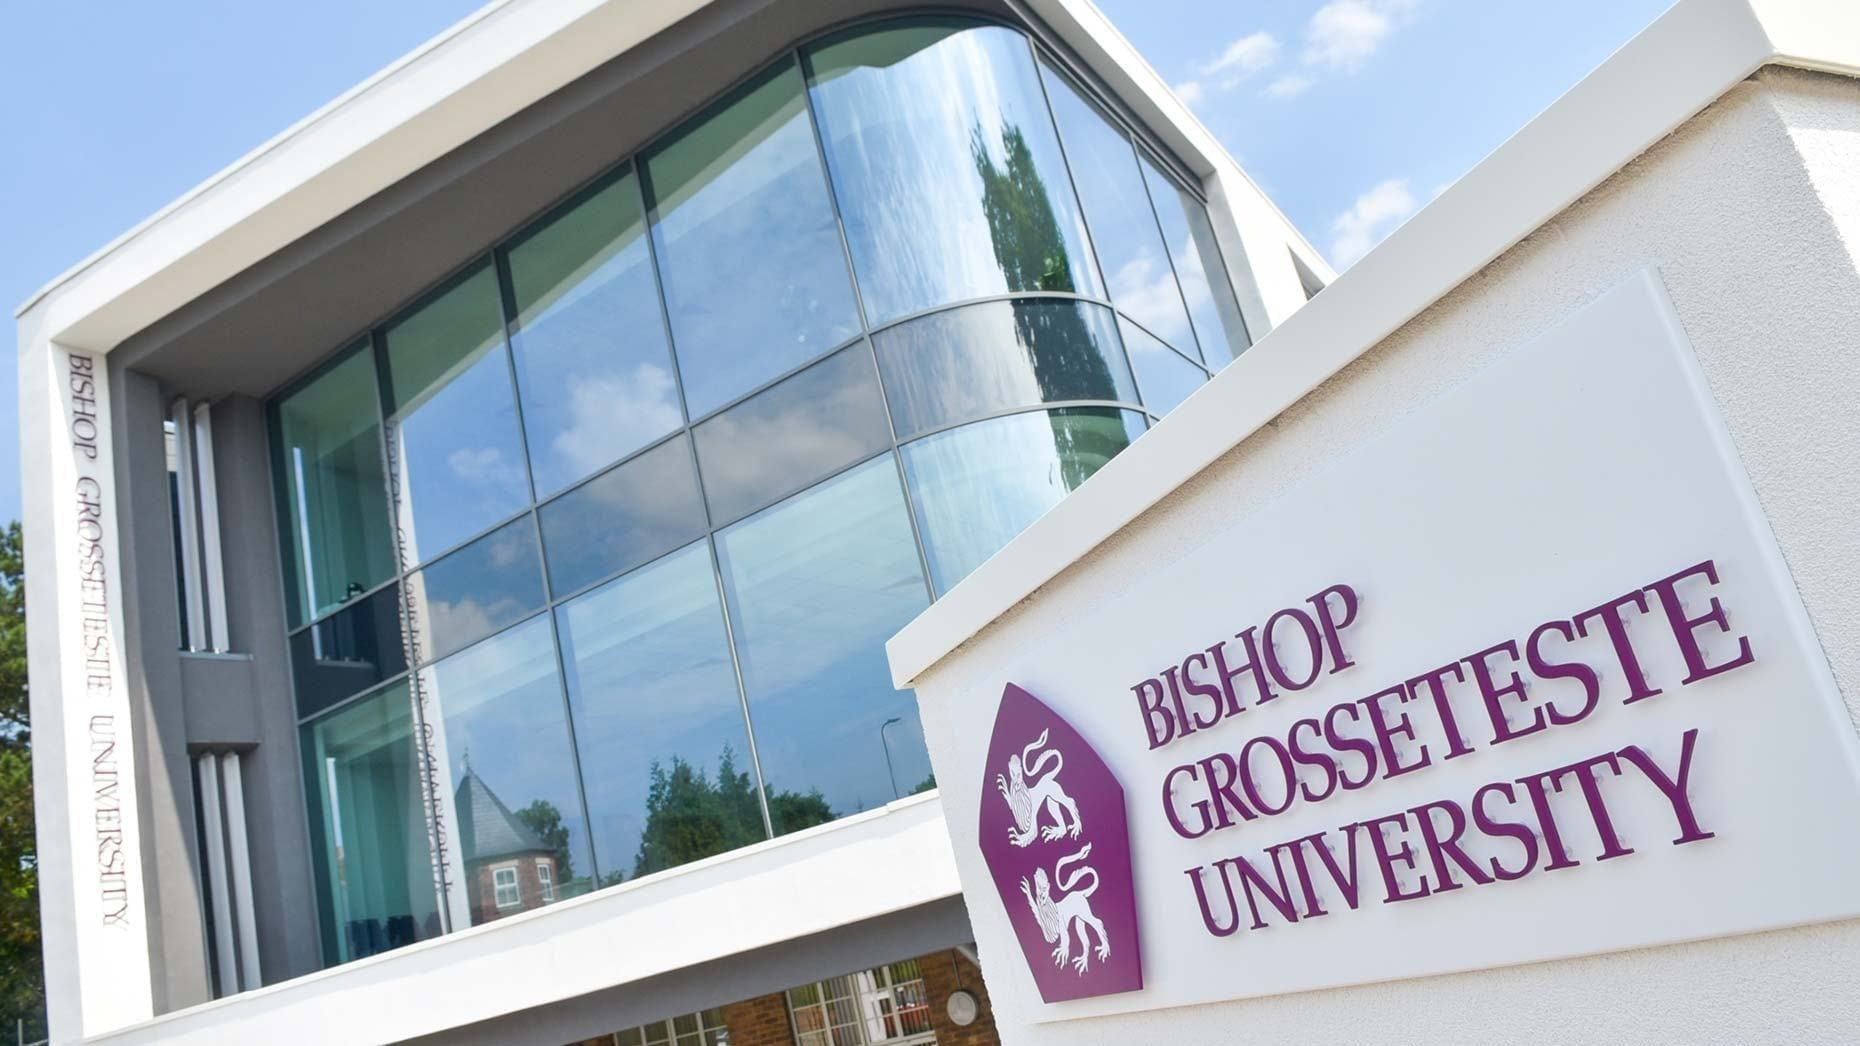 More School Direct training places with Bishop Grosseteste